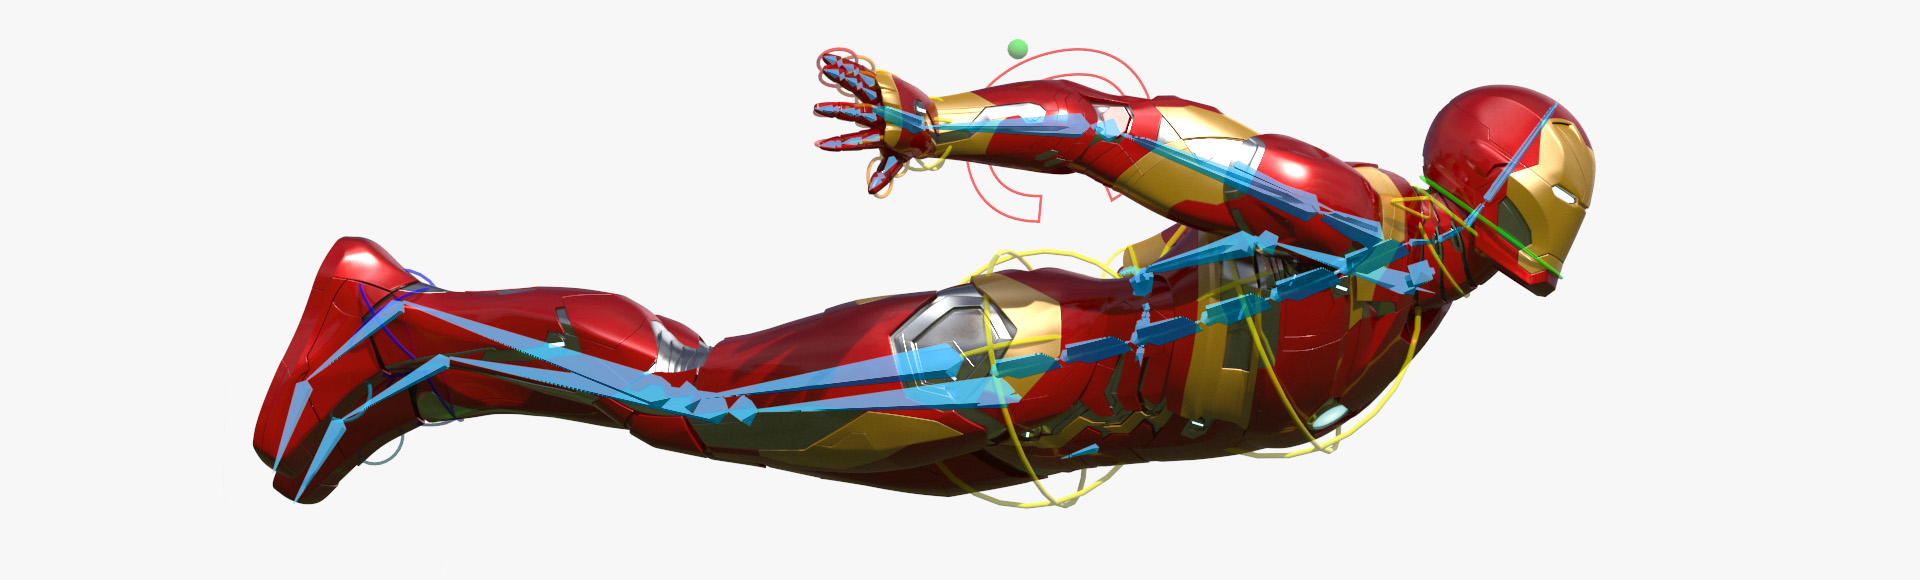 Iron Man Flying Rigged 3D Model